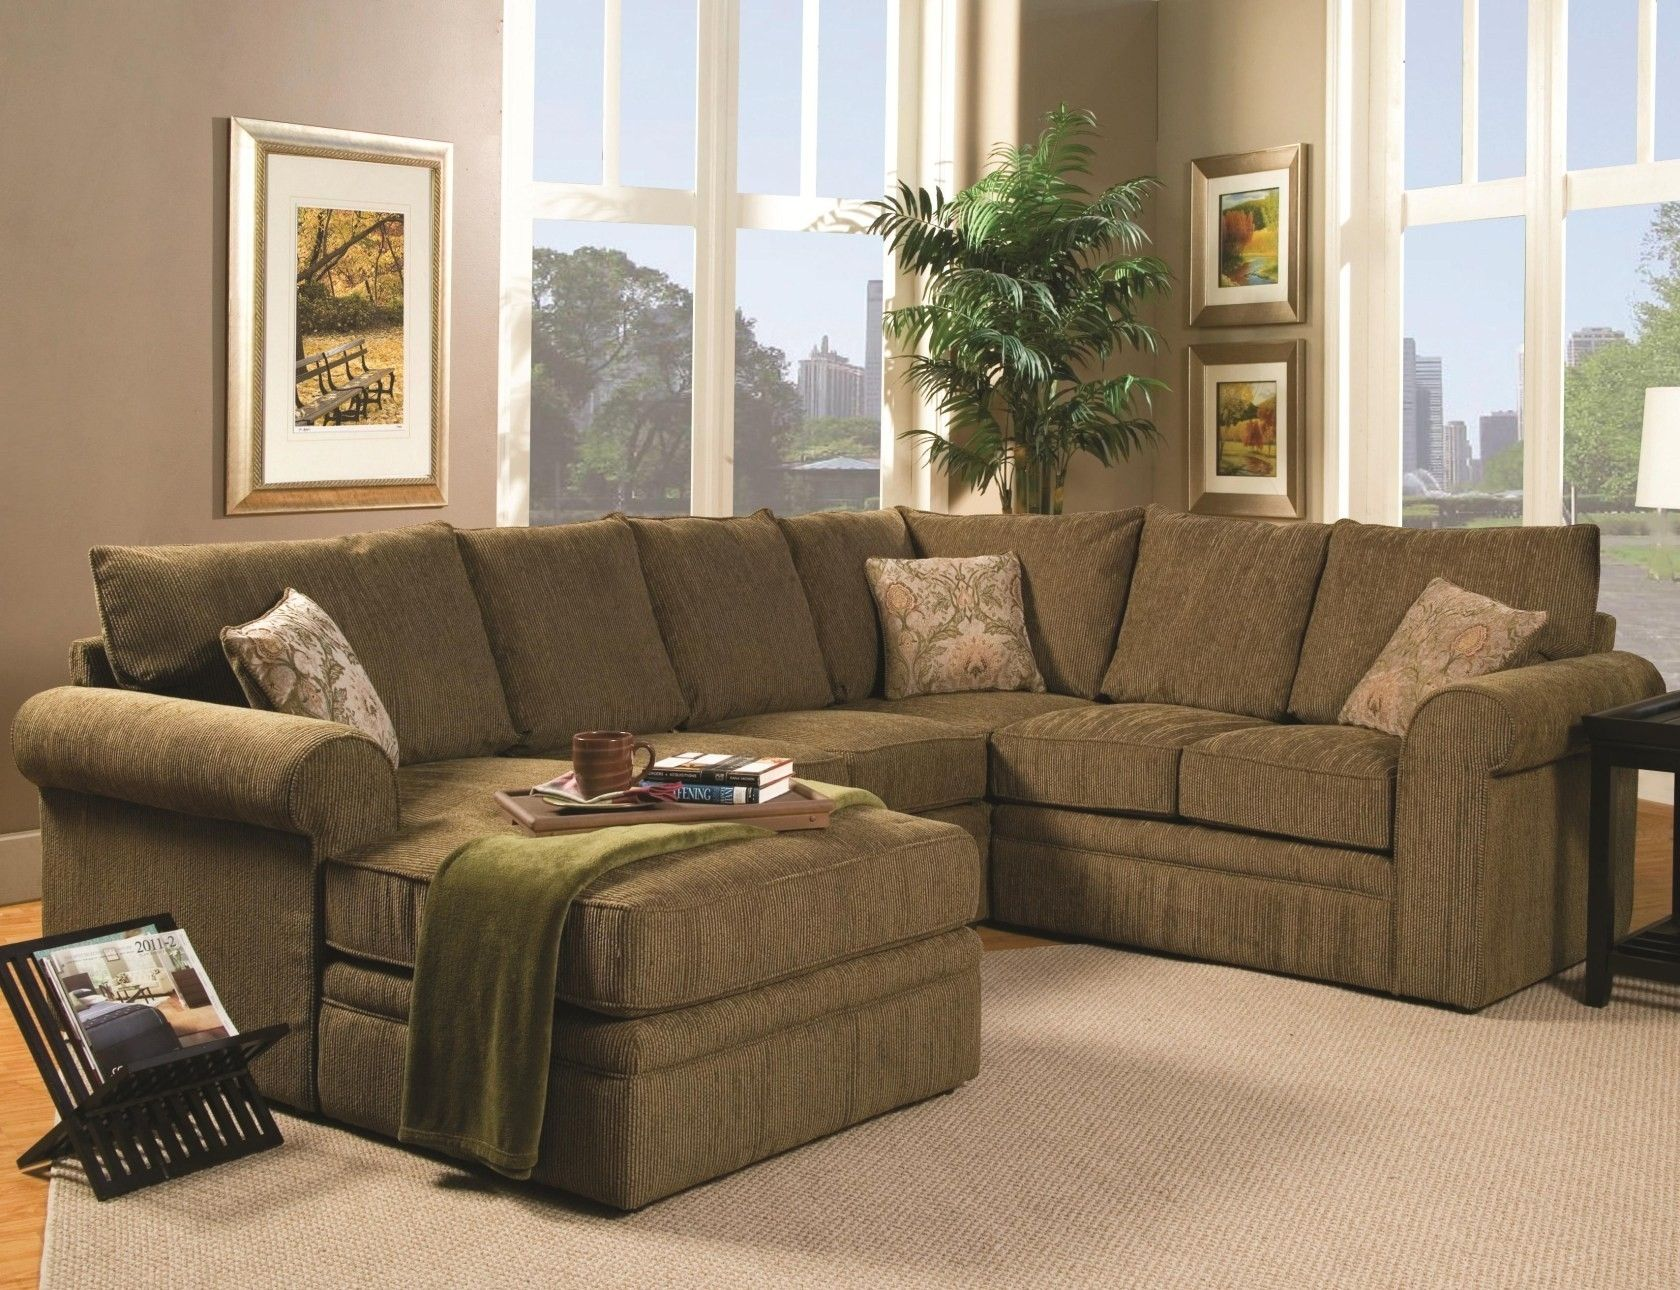 Olive Green Chenille Fabric Sectional Sofa